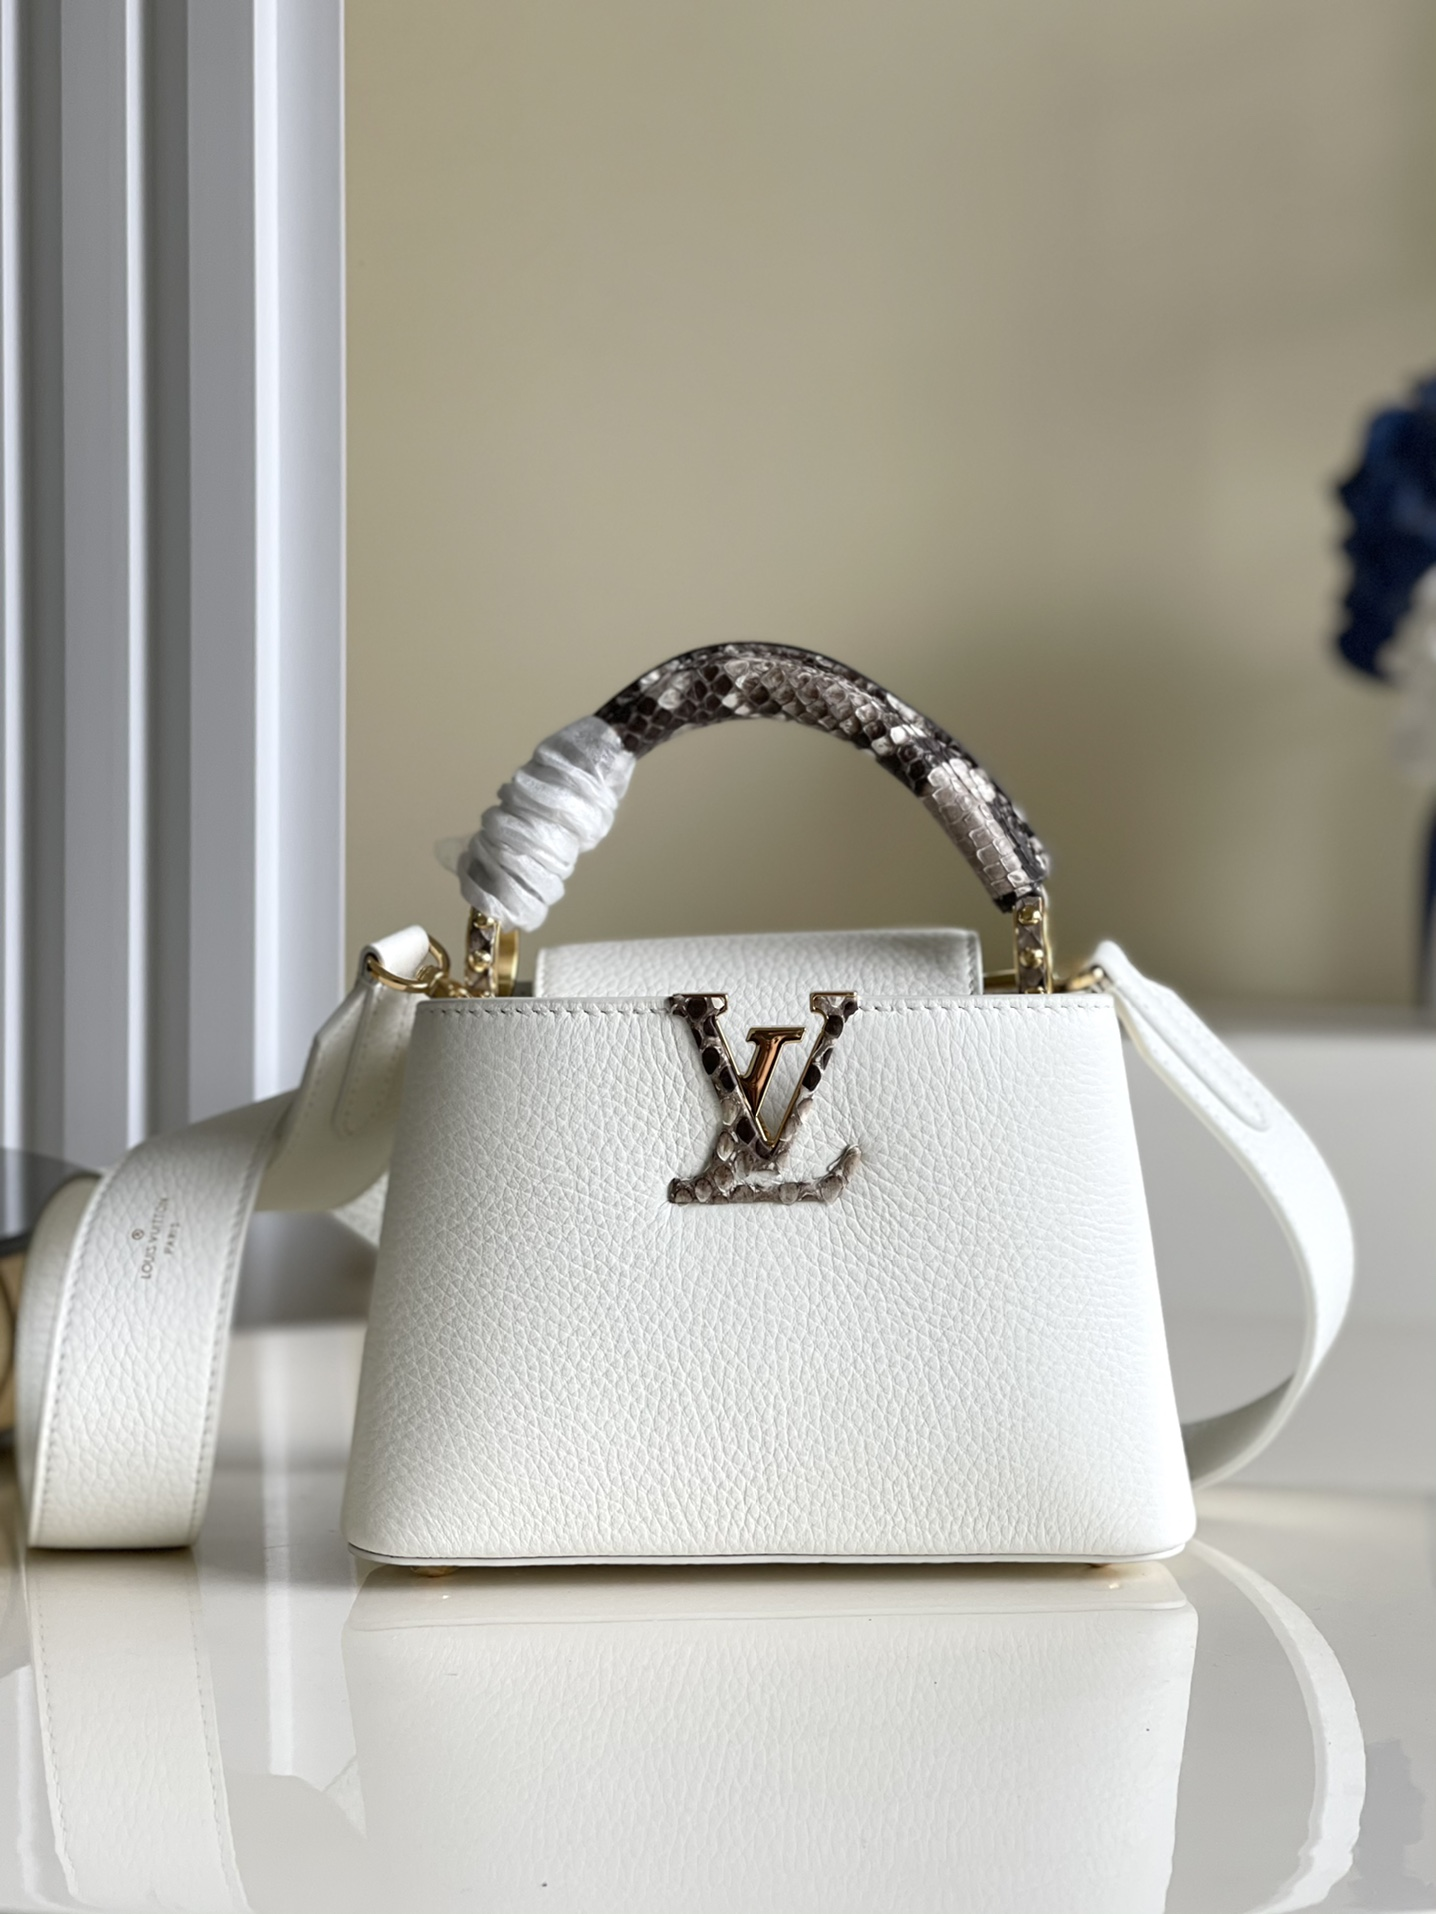 Replica Louis Vuitton M98477 Capucines Taurillon Leather in White with Handle Wrapped in Natural Python Leather